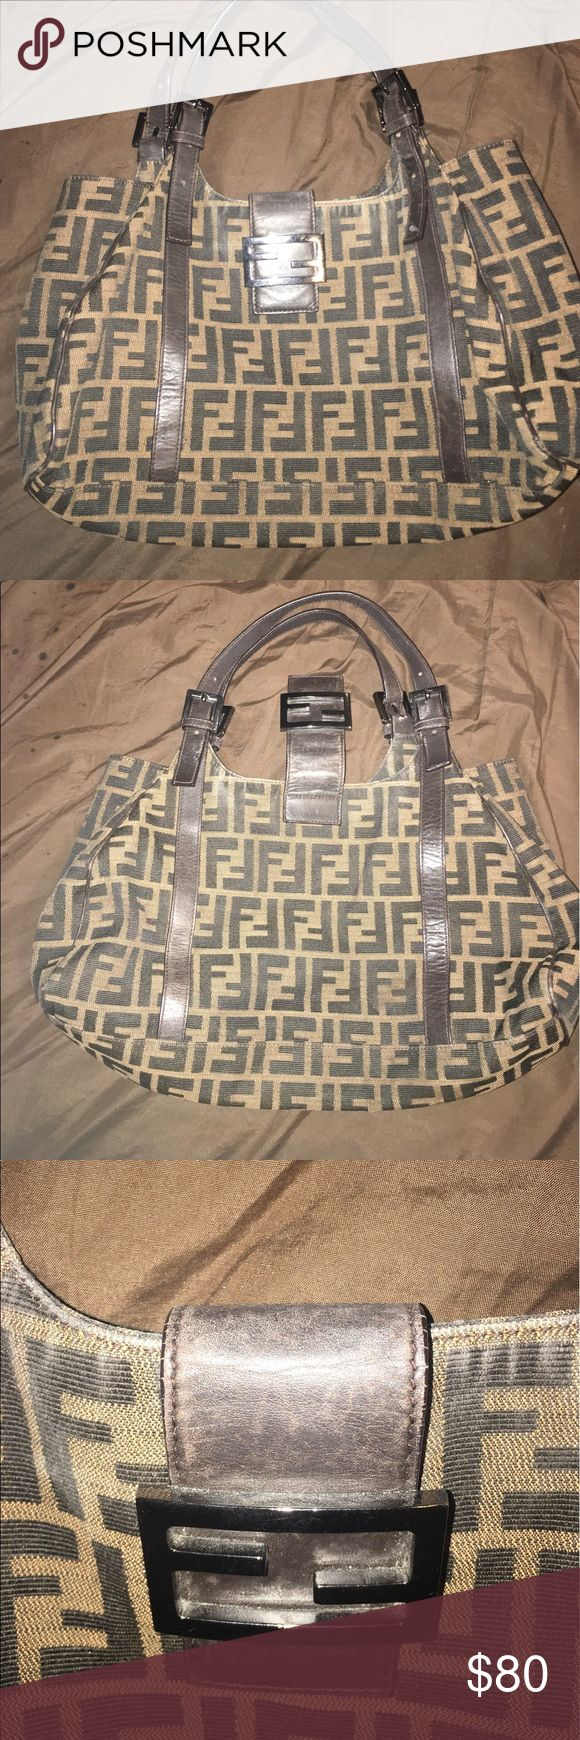 Fendi purse Great fendi purse with allots of life left. Wear pictures on the inner handles of purse. It other then that in great condition Fendi Bags